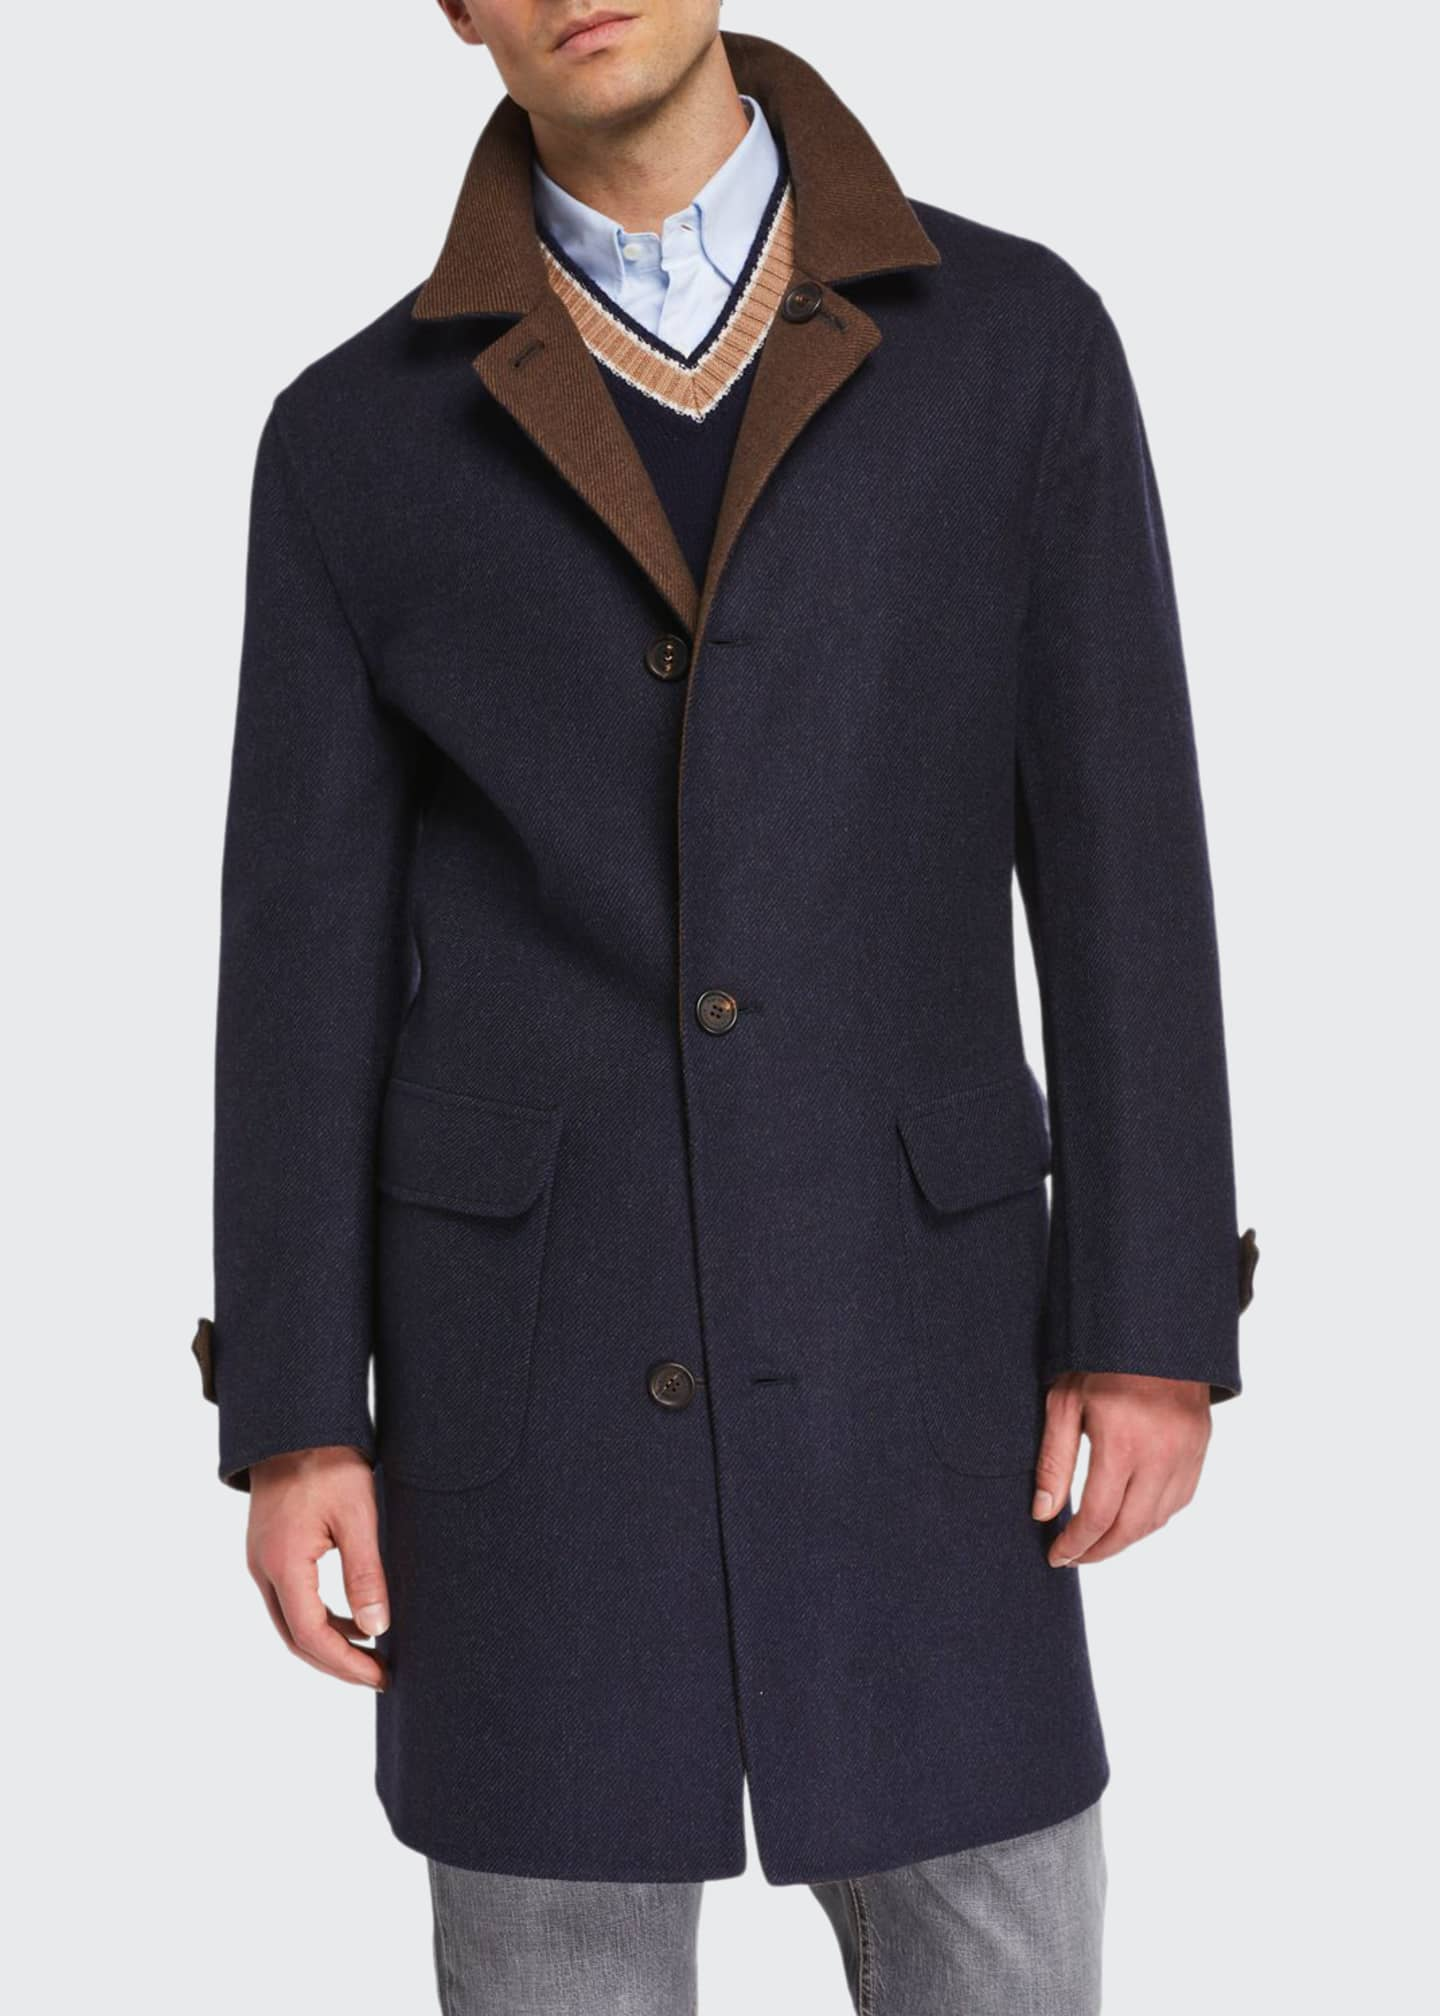 Brunello Cucinelli Men's Reversible Wool Topcoat